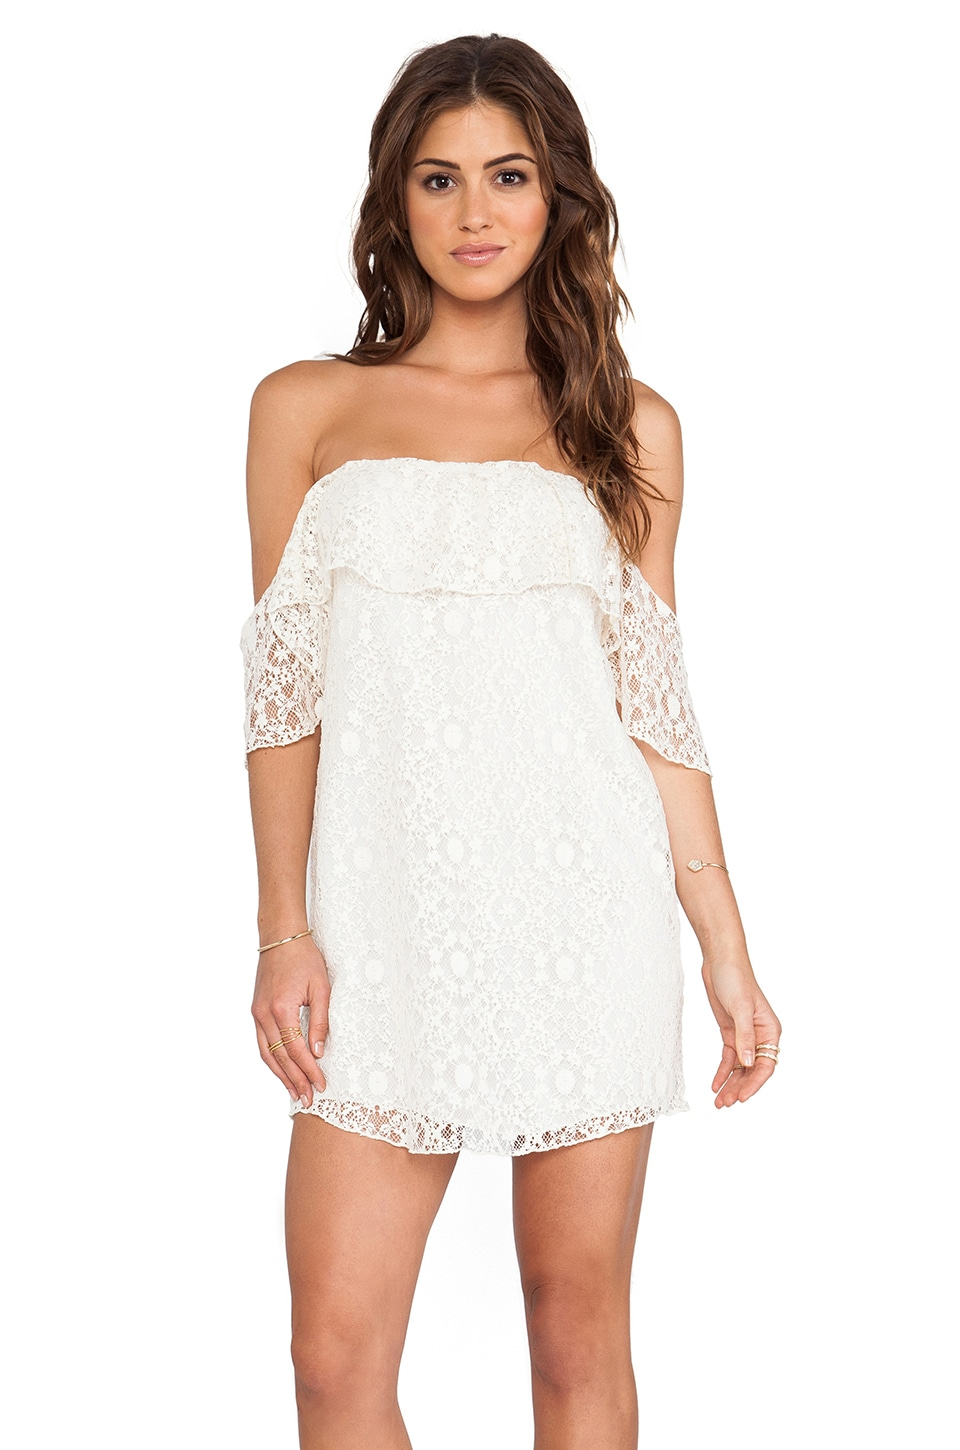 Boulee Emily Dress in Ivory Lace